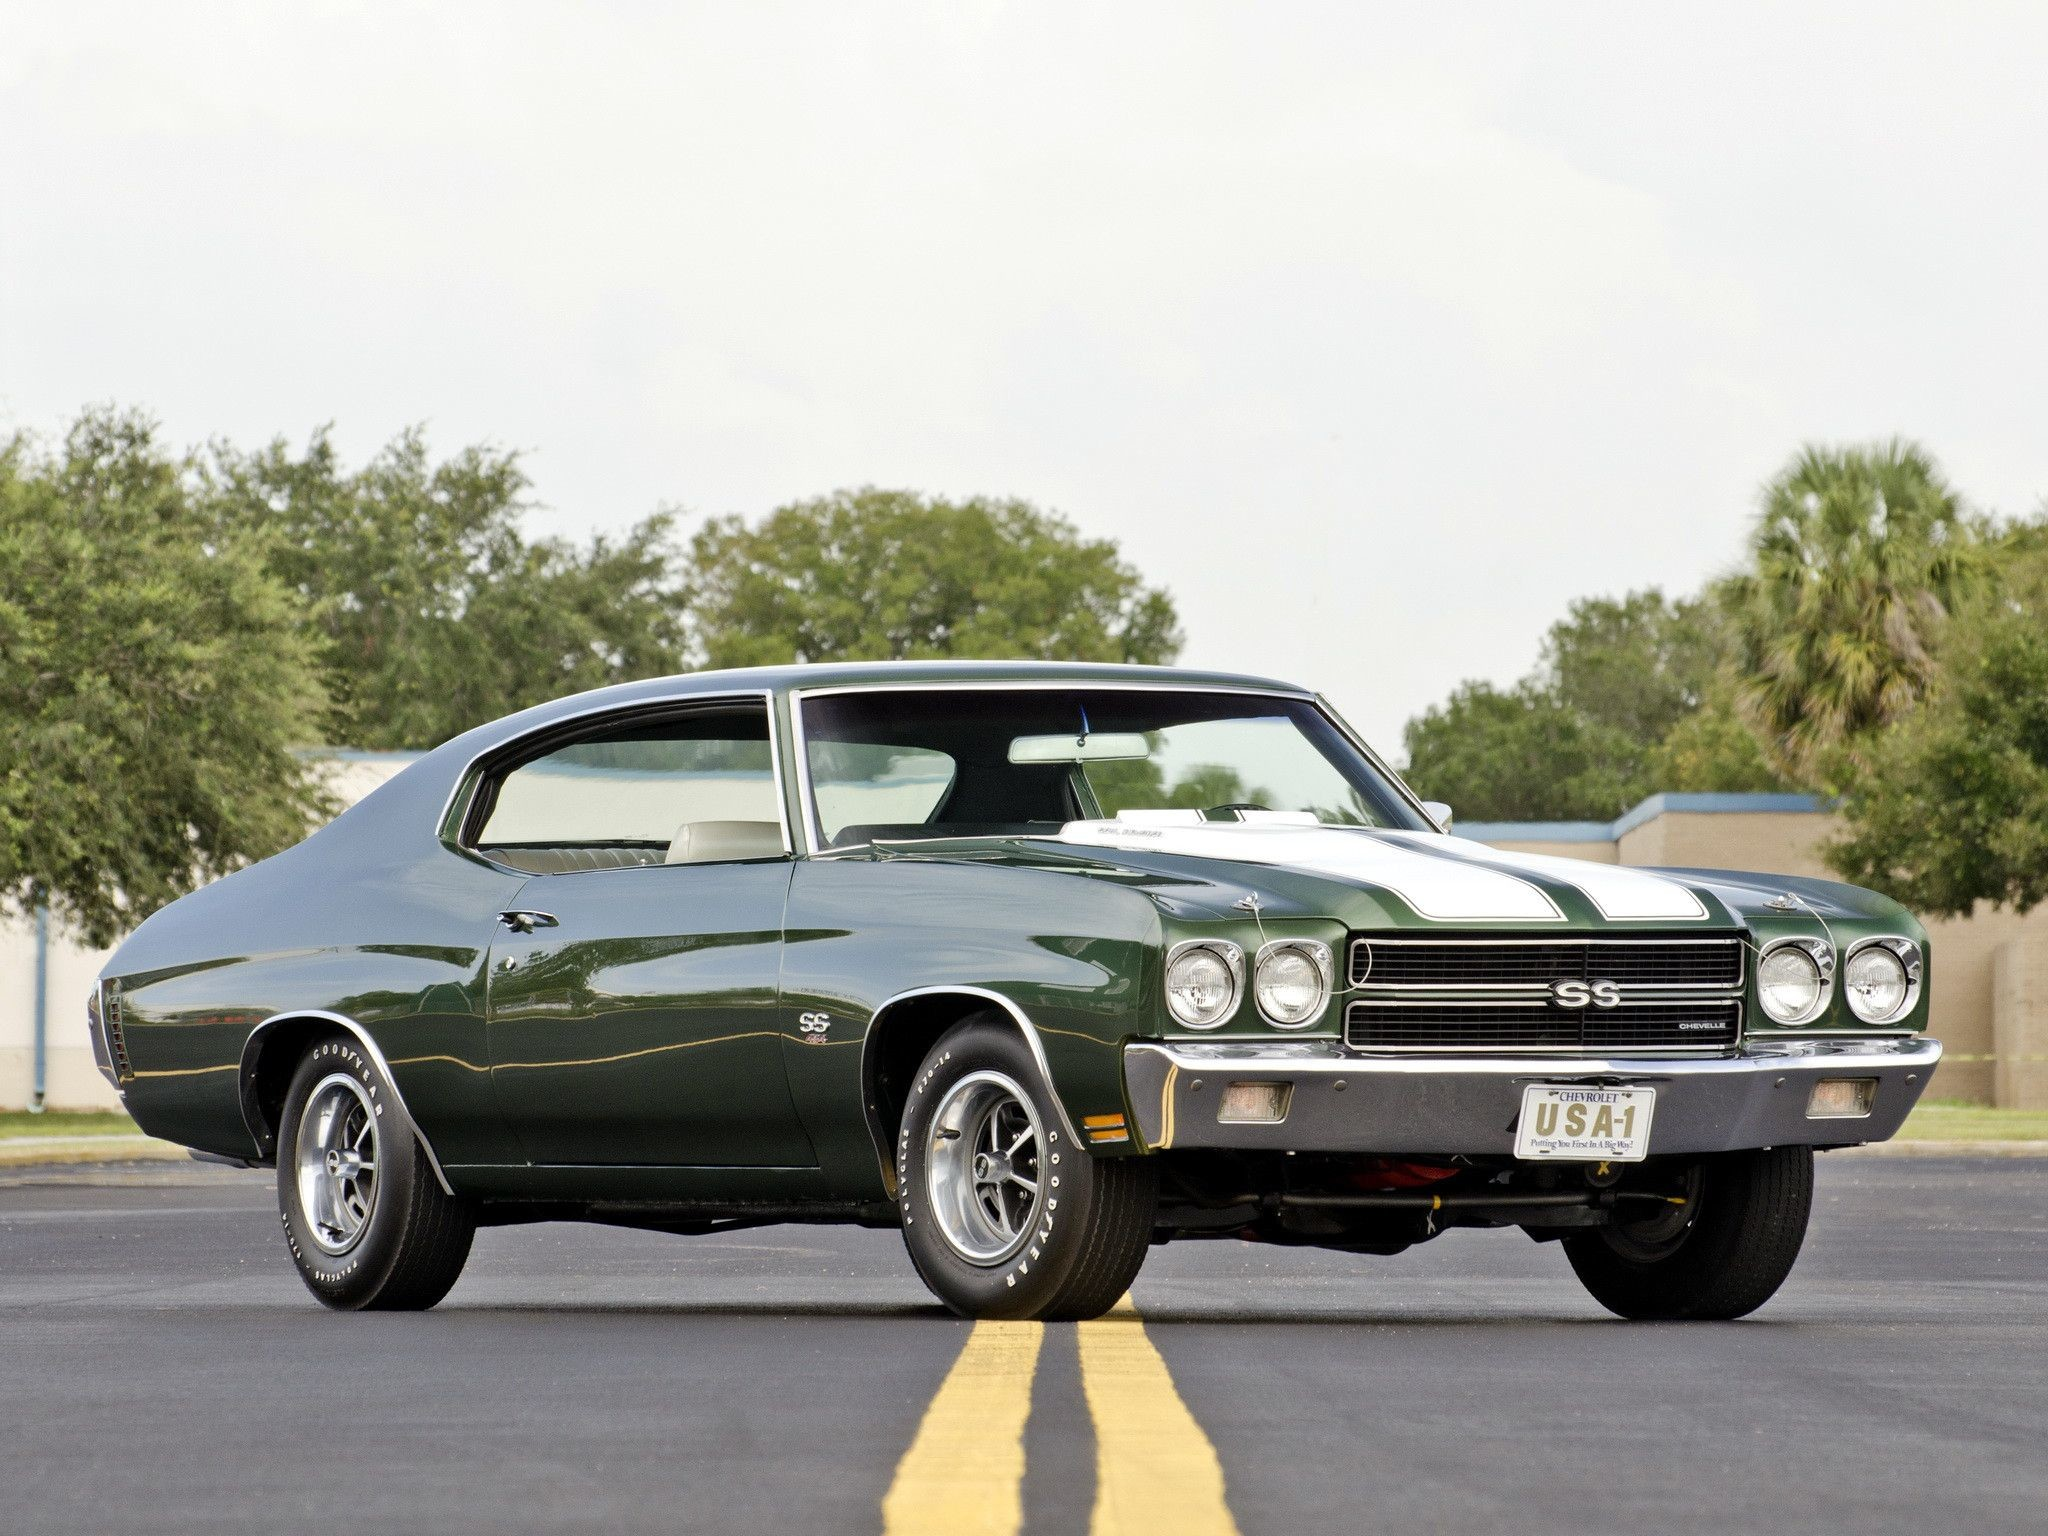 72 Chevelle Wallpaper Images